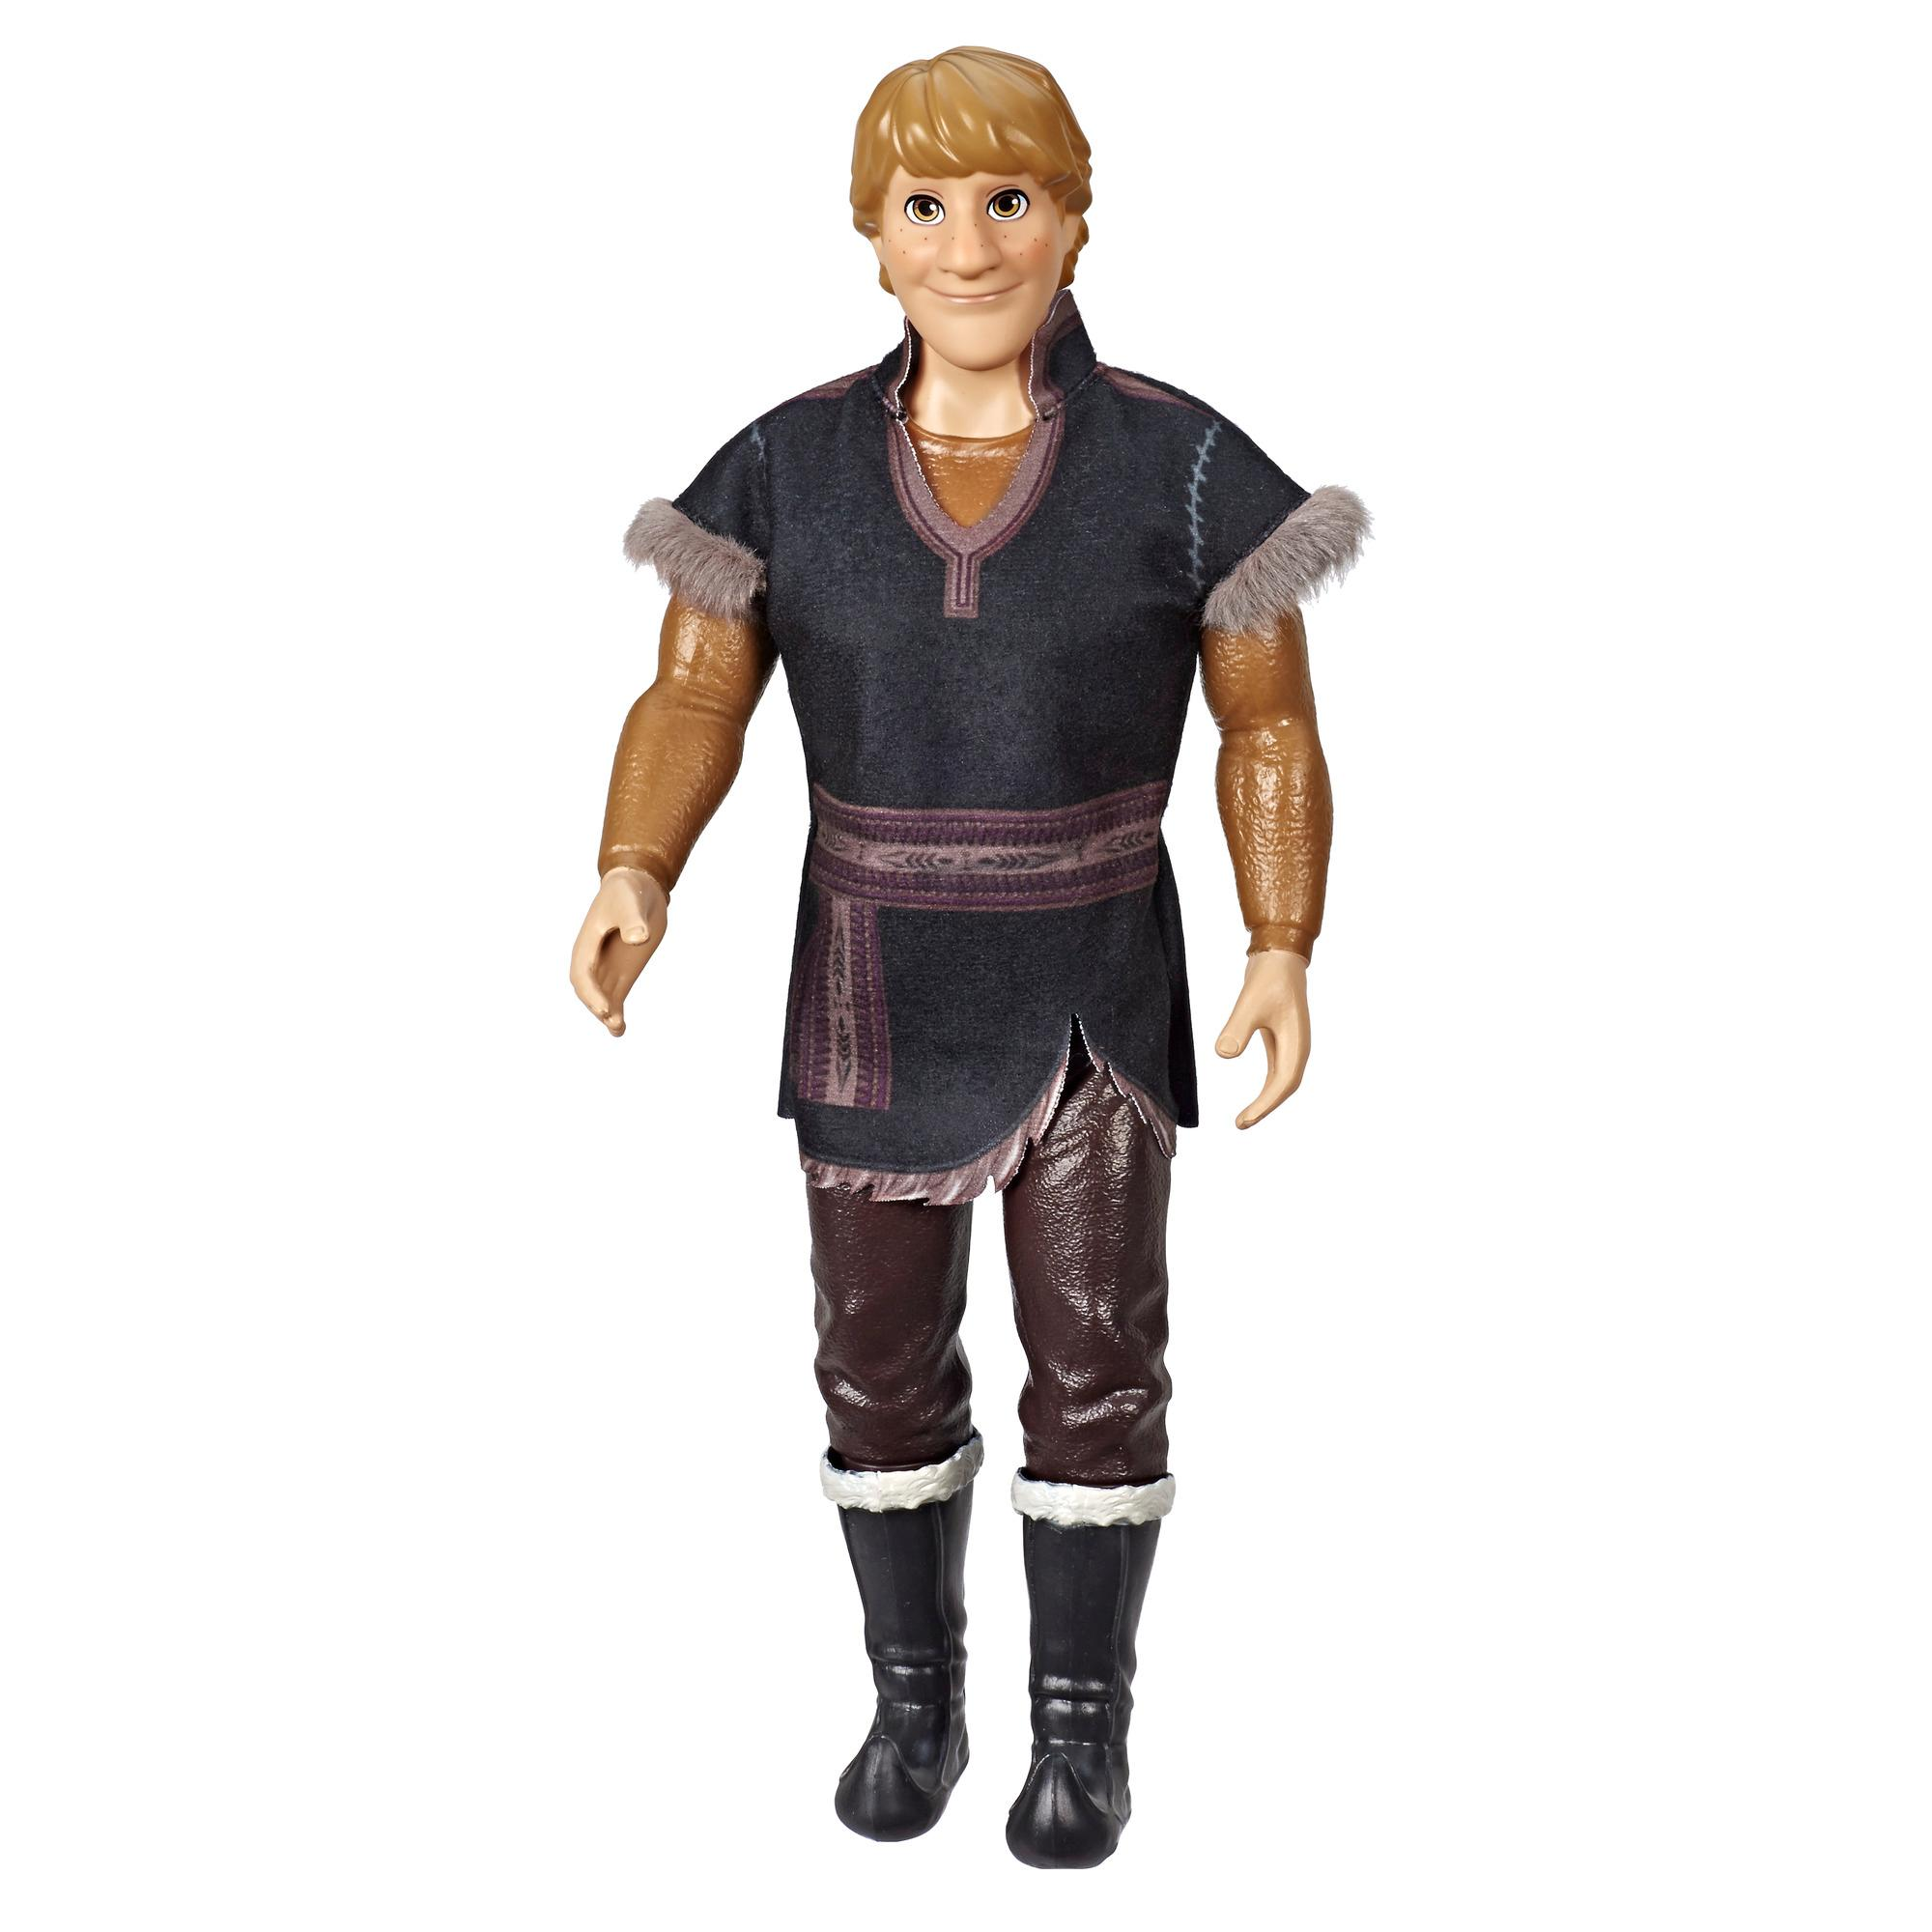 Disney Frozen - Kristoff (Fashion Doll con abito marrone, ispirata al film Frozen 2)